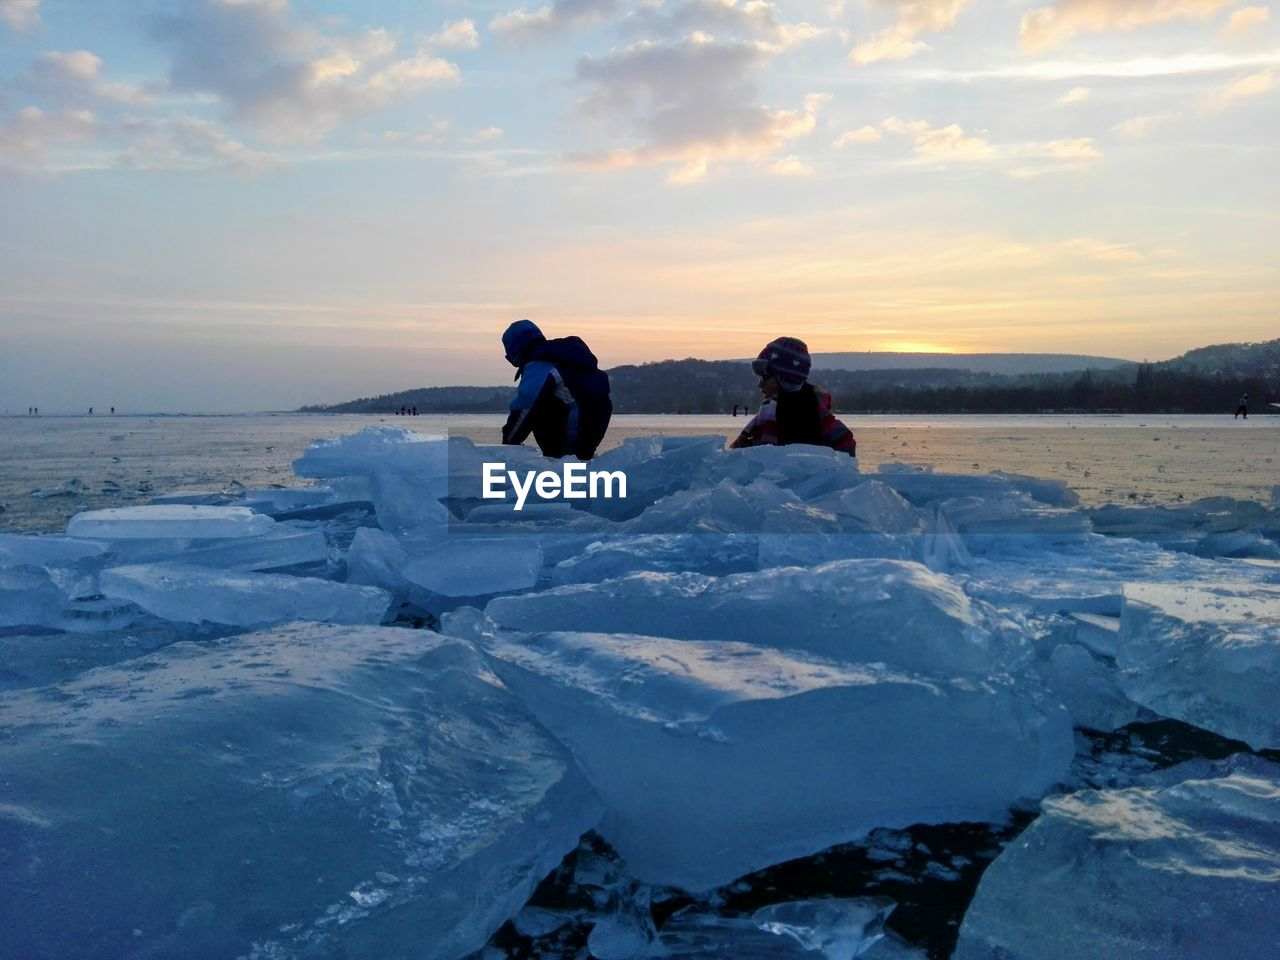 Siblings by ice formation against sky during sunset